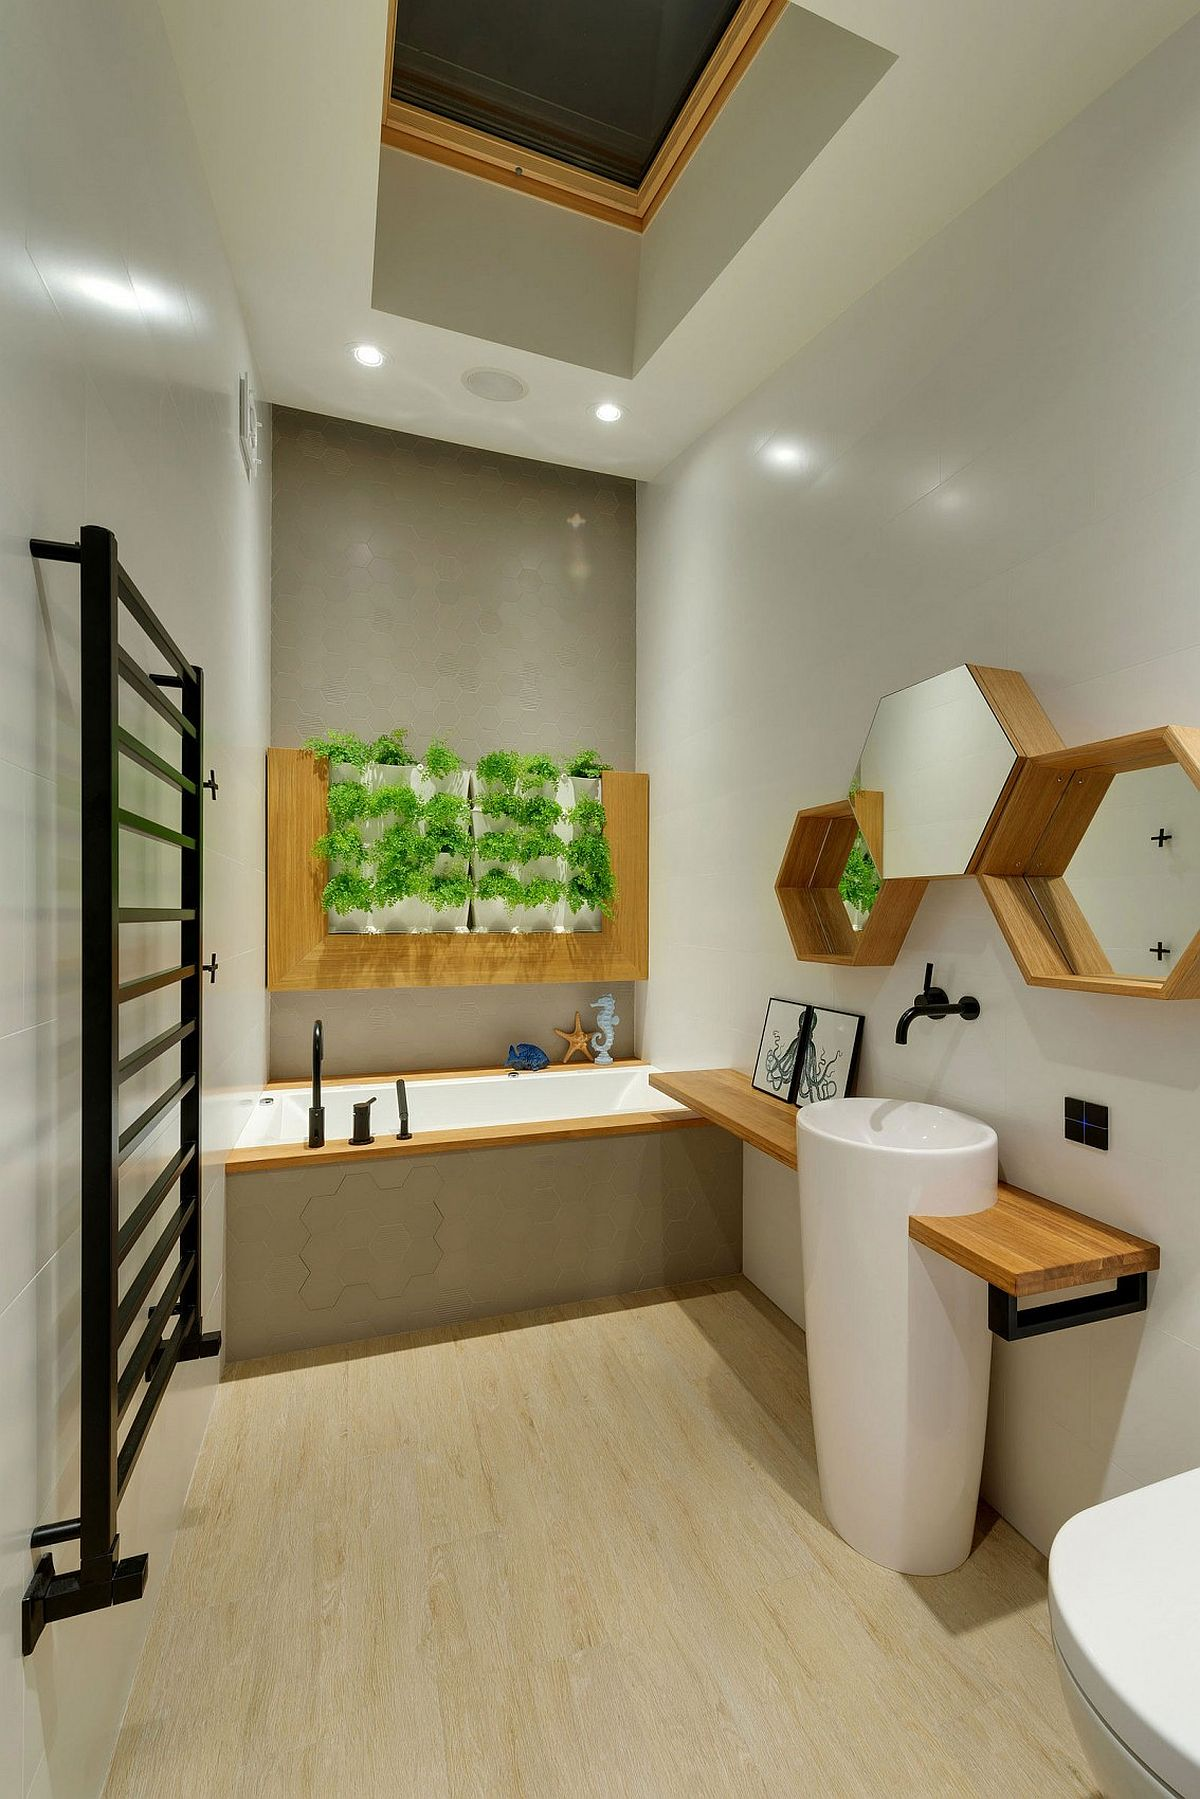 Creative bathroom design with green wall feature and hexagonal shelves